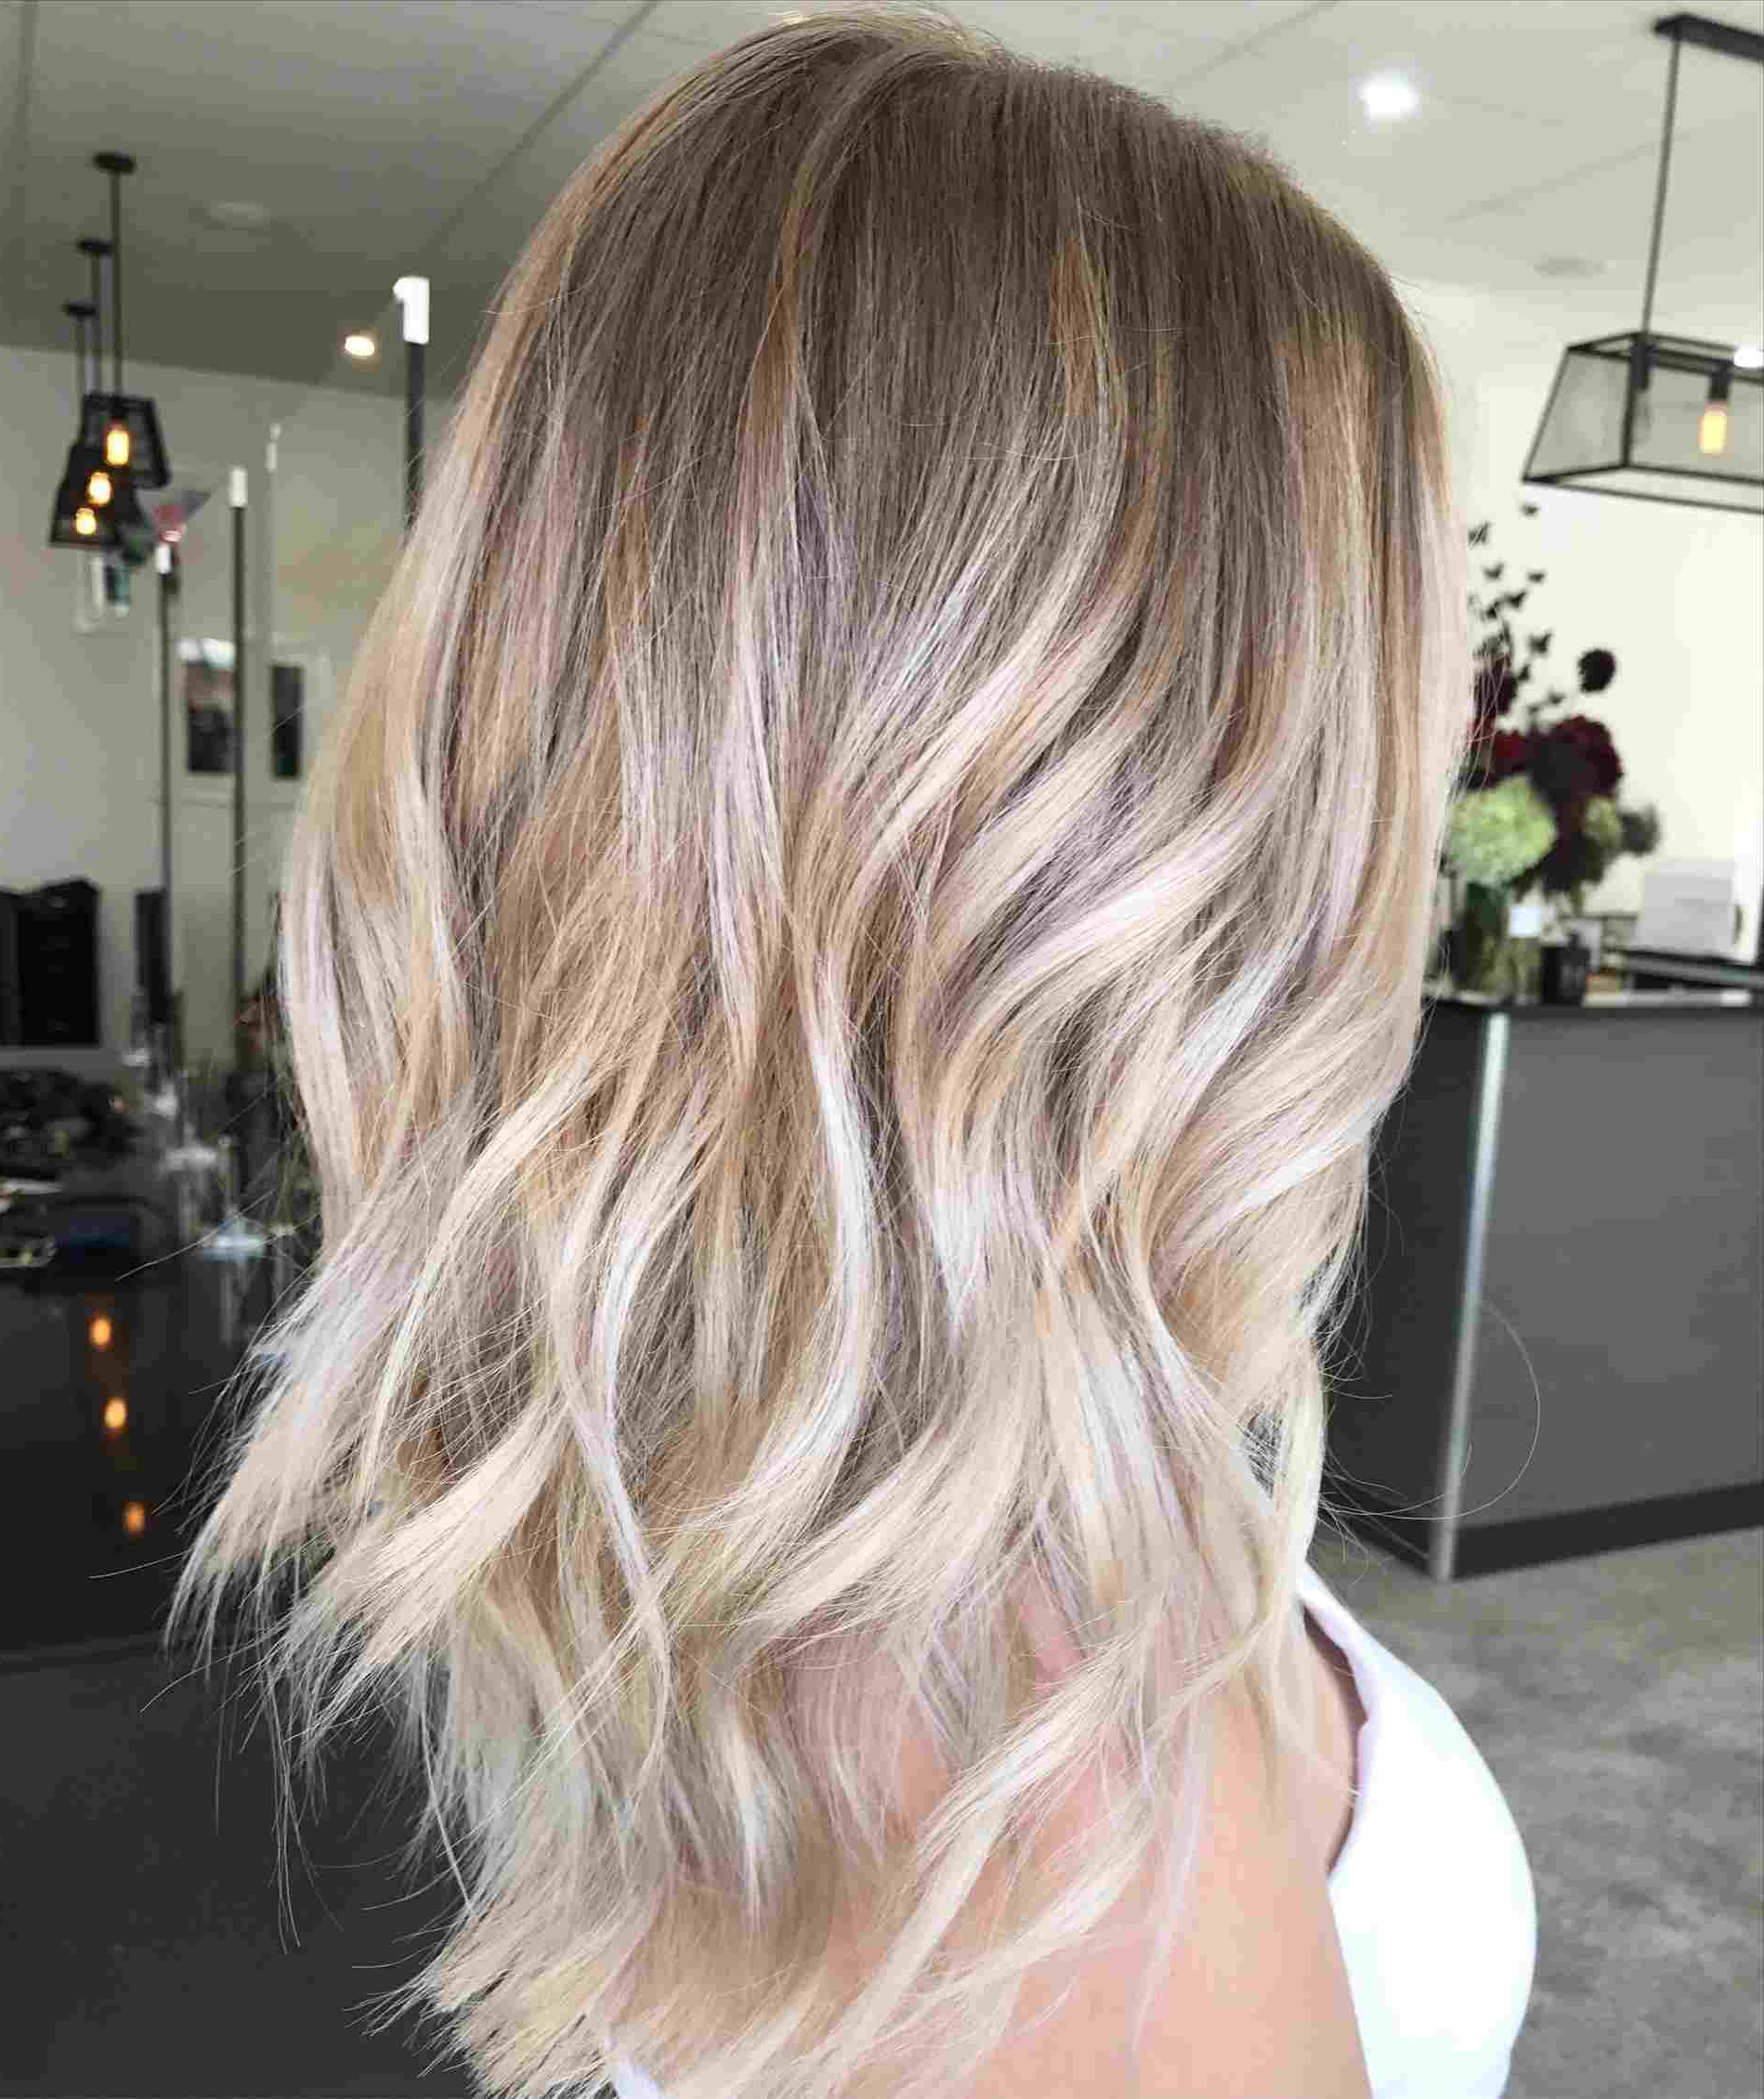 Hair Beautiful Hairstyles Tumblr Down Best Of Pinterest Within Hippie Short Hairstyles (View 19 of 25)